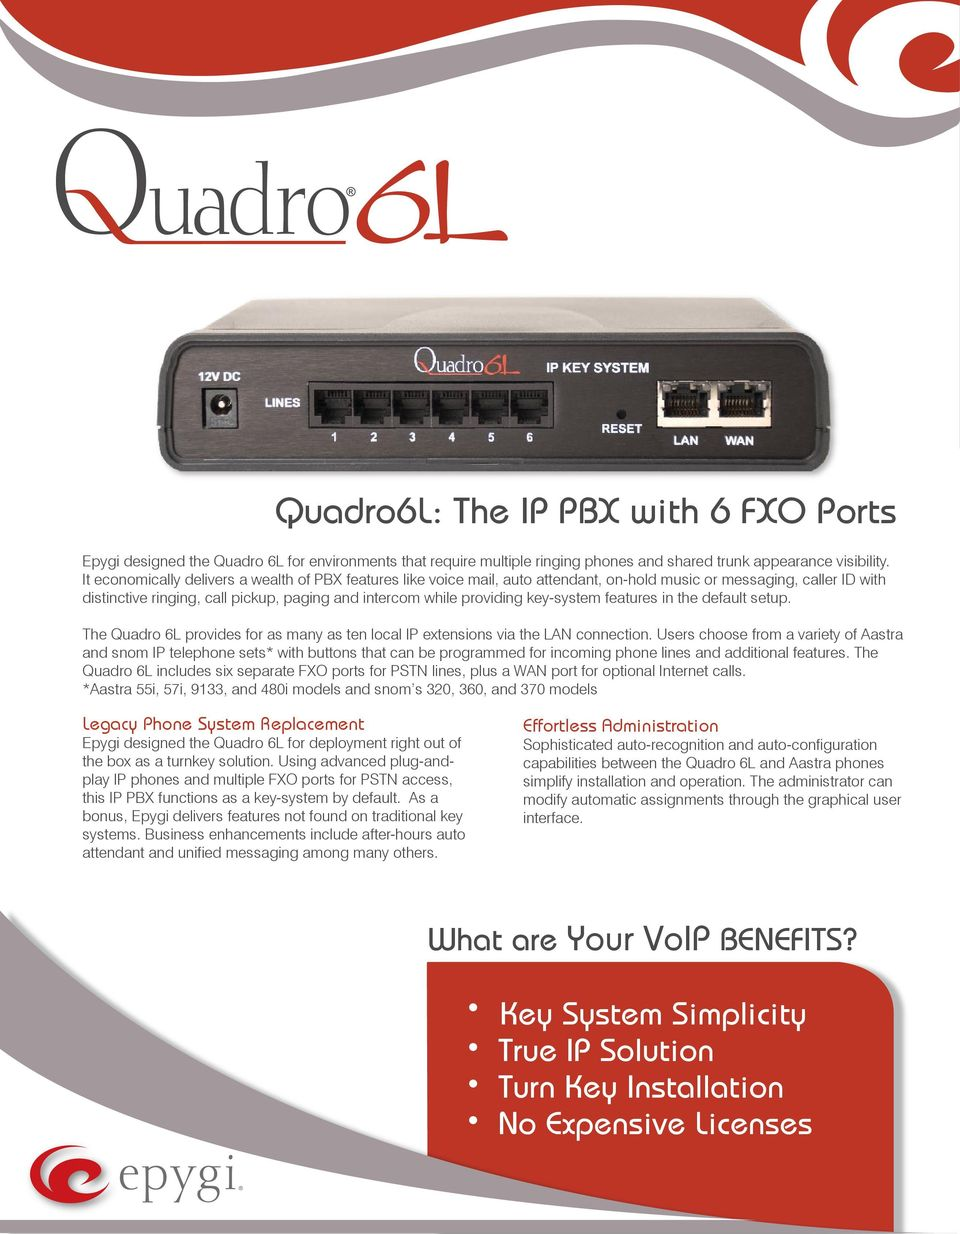 key-system features in the default setup. The Quadro 6L provides for as many as ten local IP extensions via the LAN connection.